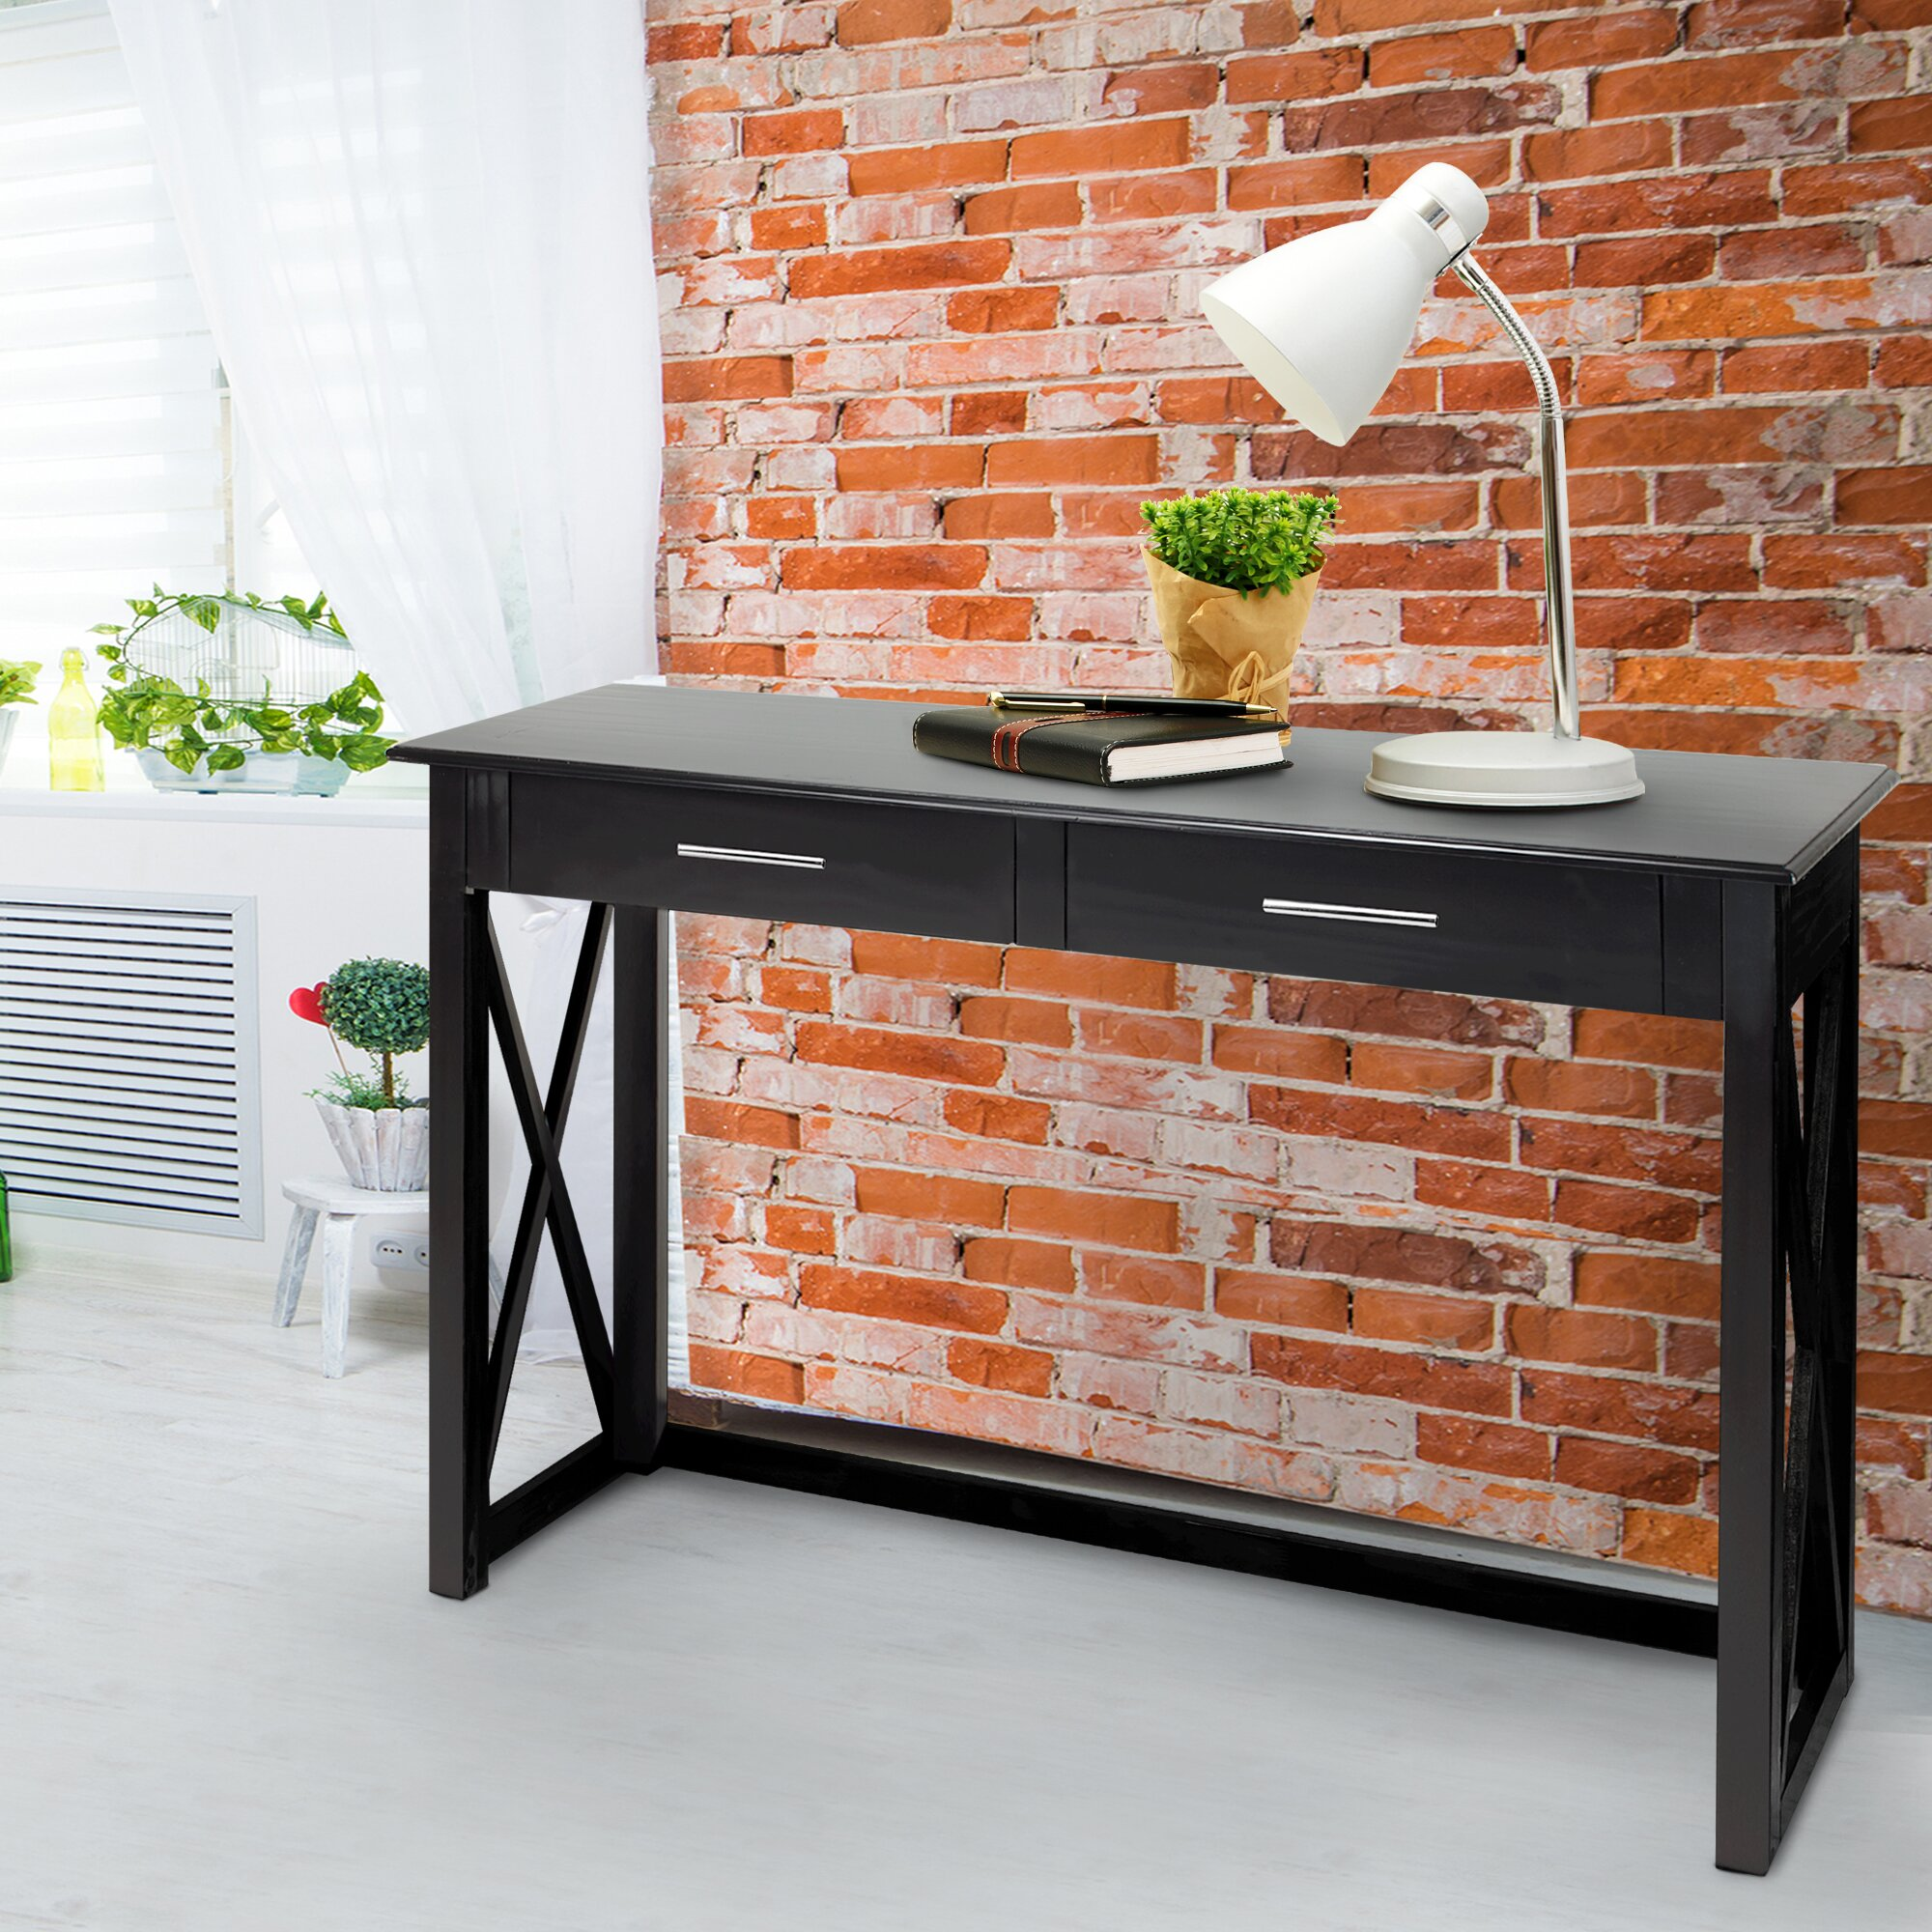 The Brick Furniture Kitchener Casual Home Bay View Console Table Reviews Wayfair